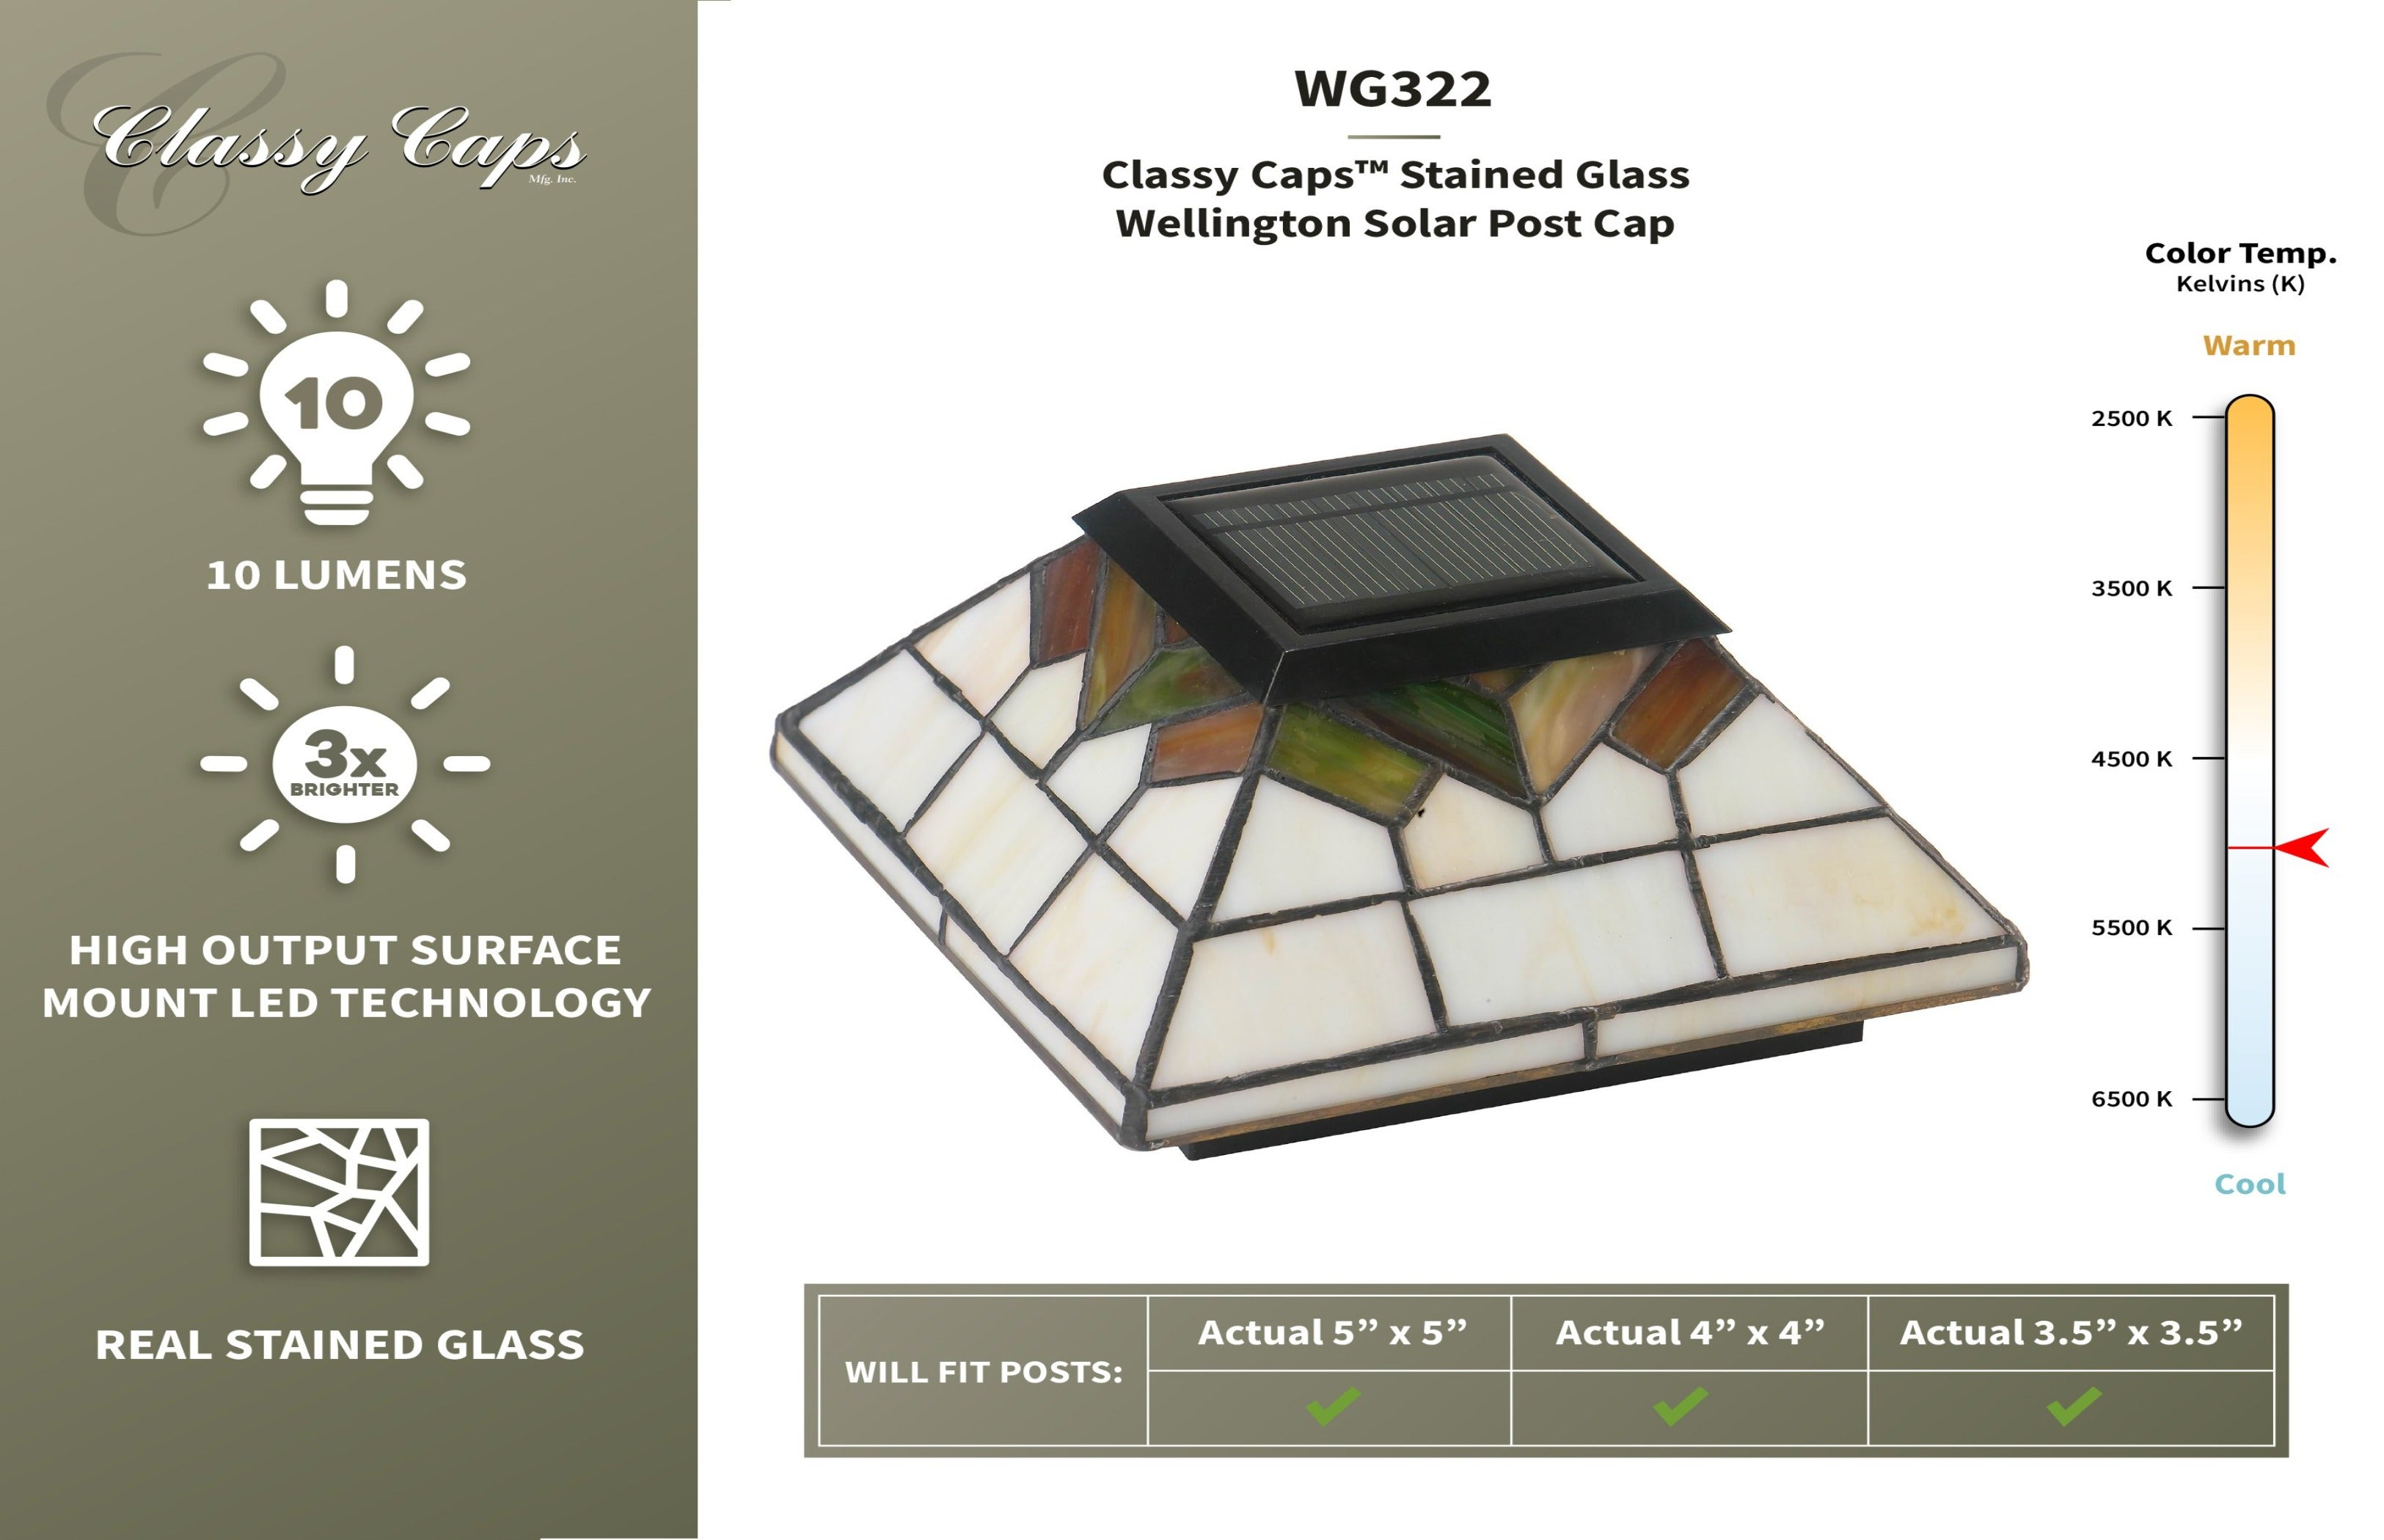 STAINED GLASS WELLINGTON SOLAR POST CAPSTAINED GLASS WELLINGTON SOLAR POST CAP